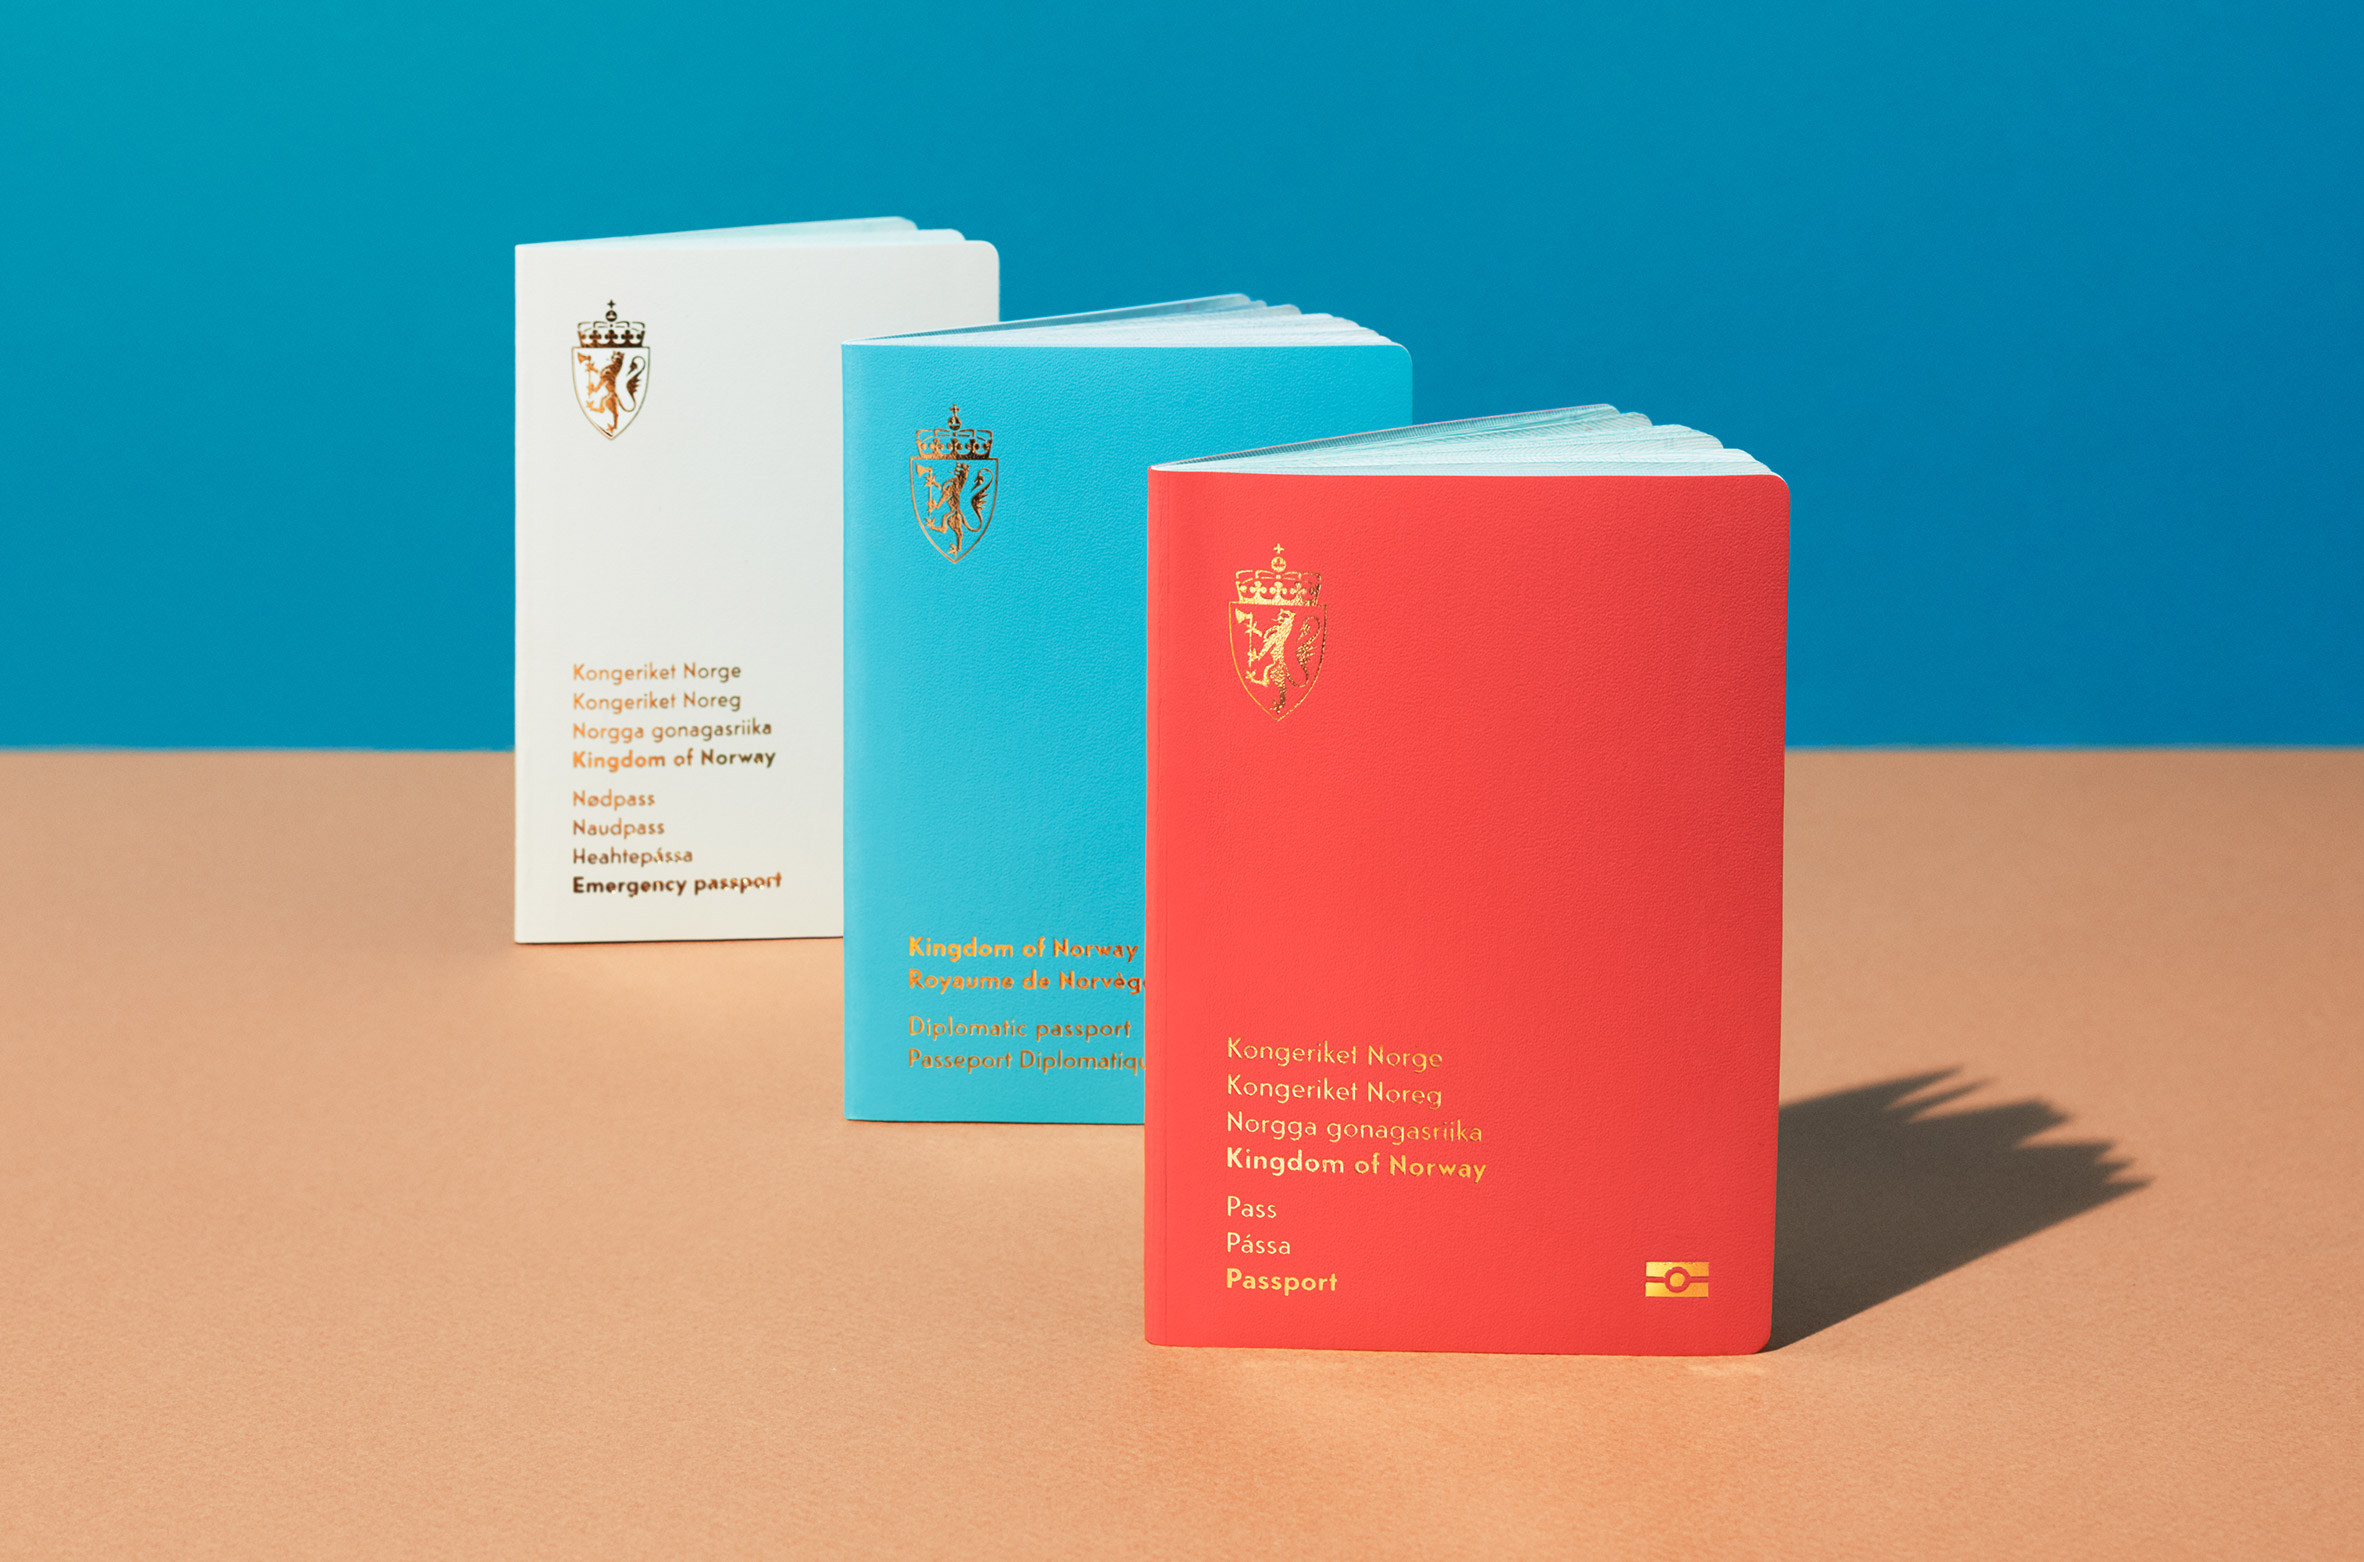 Neue studio's design for the covers of Norway's new passports